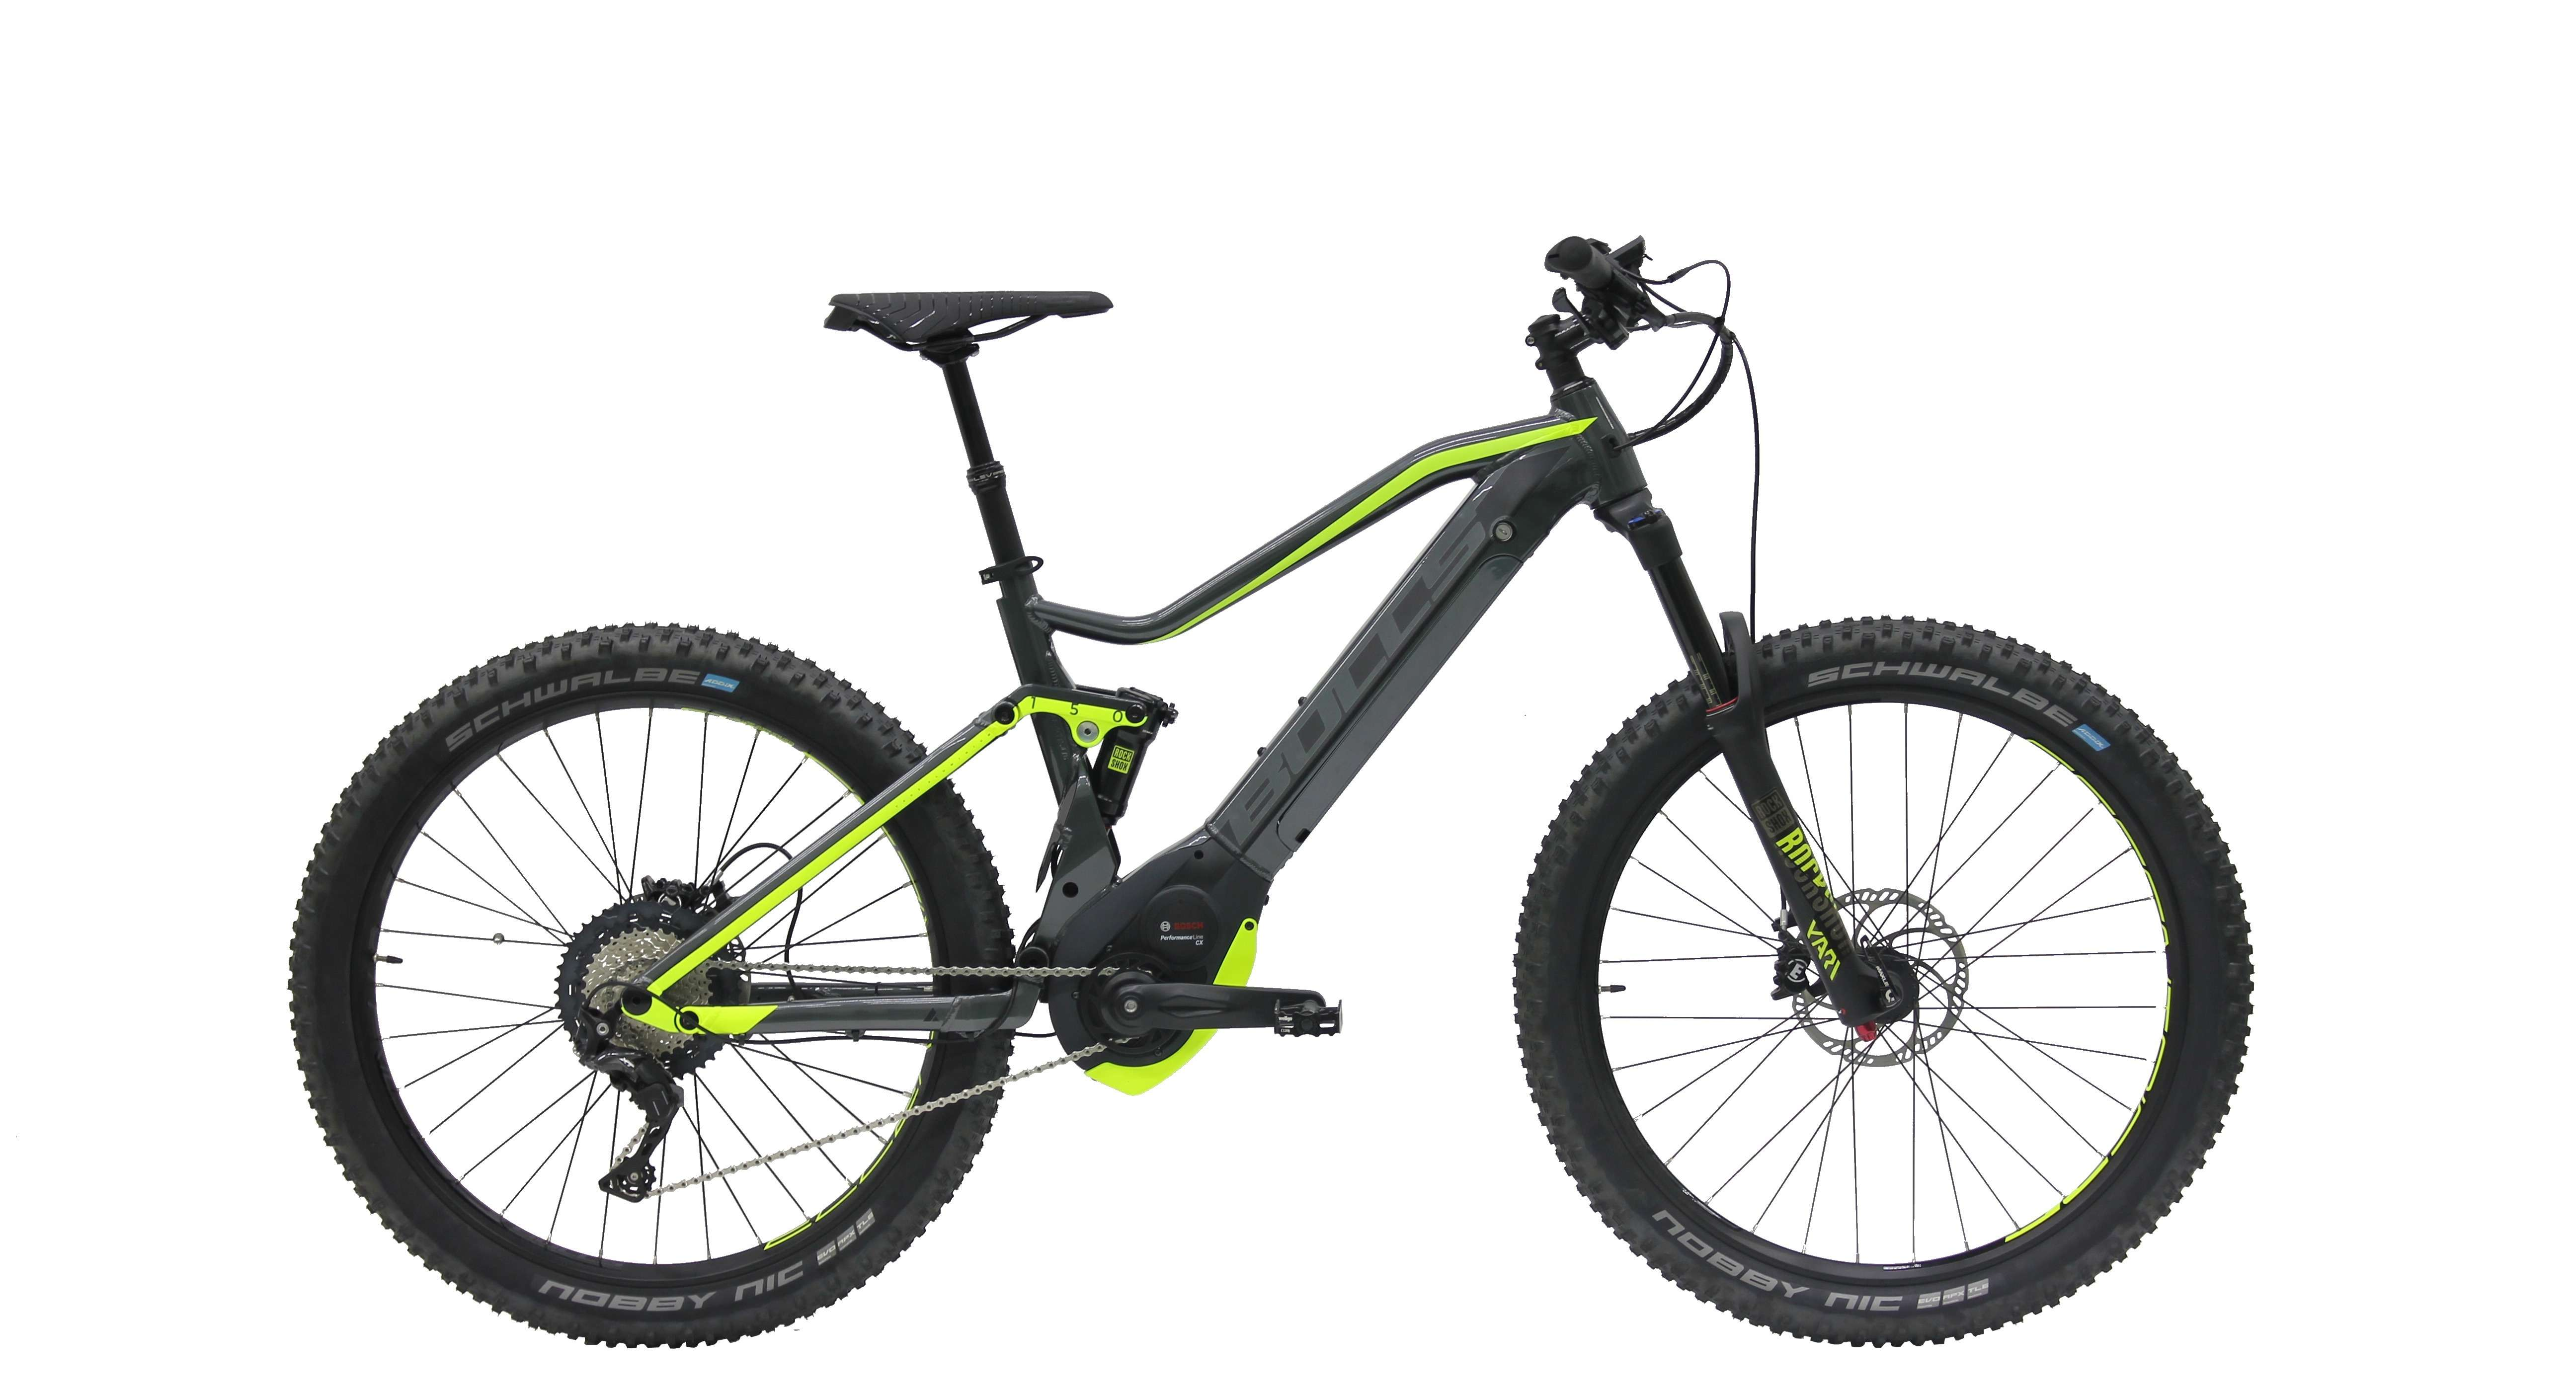 US bike dealers Bulls electric bike dealers, Online Bulls dealer, Bulls electric dealer, Bulls bikes, Bulls electric bikes, Bulls bicycles, Bulls, Bulls online